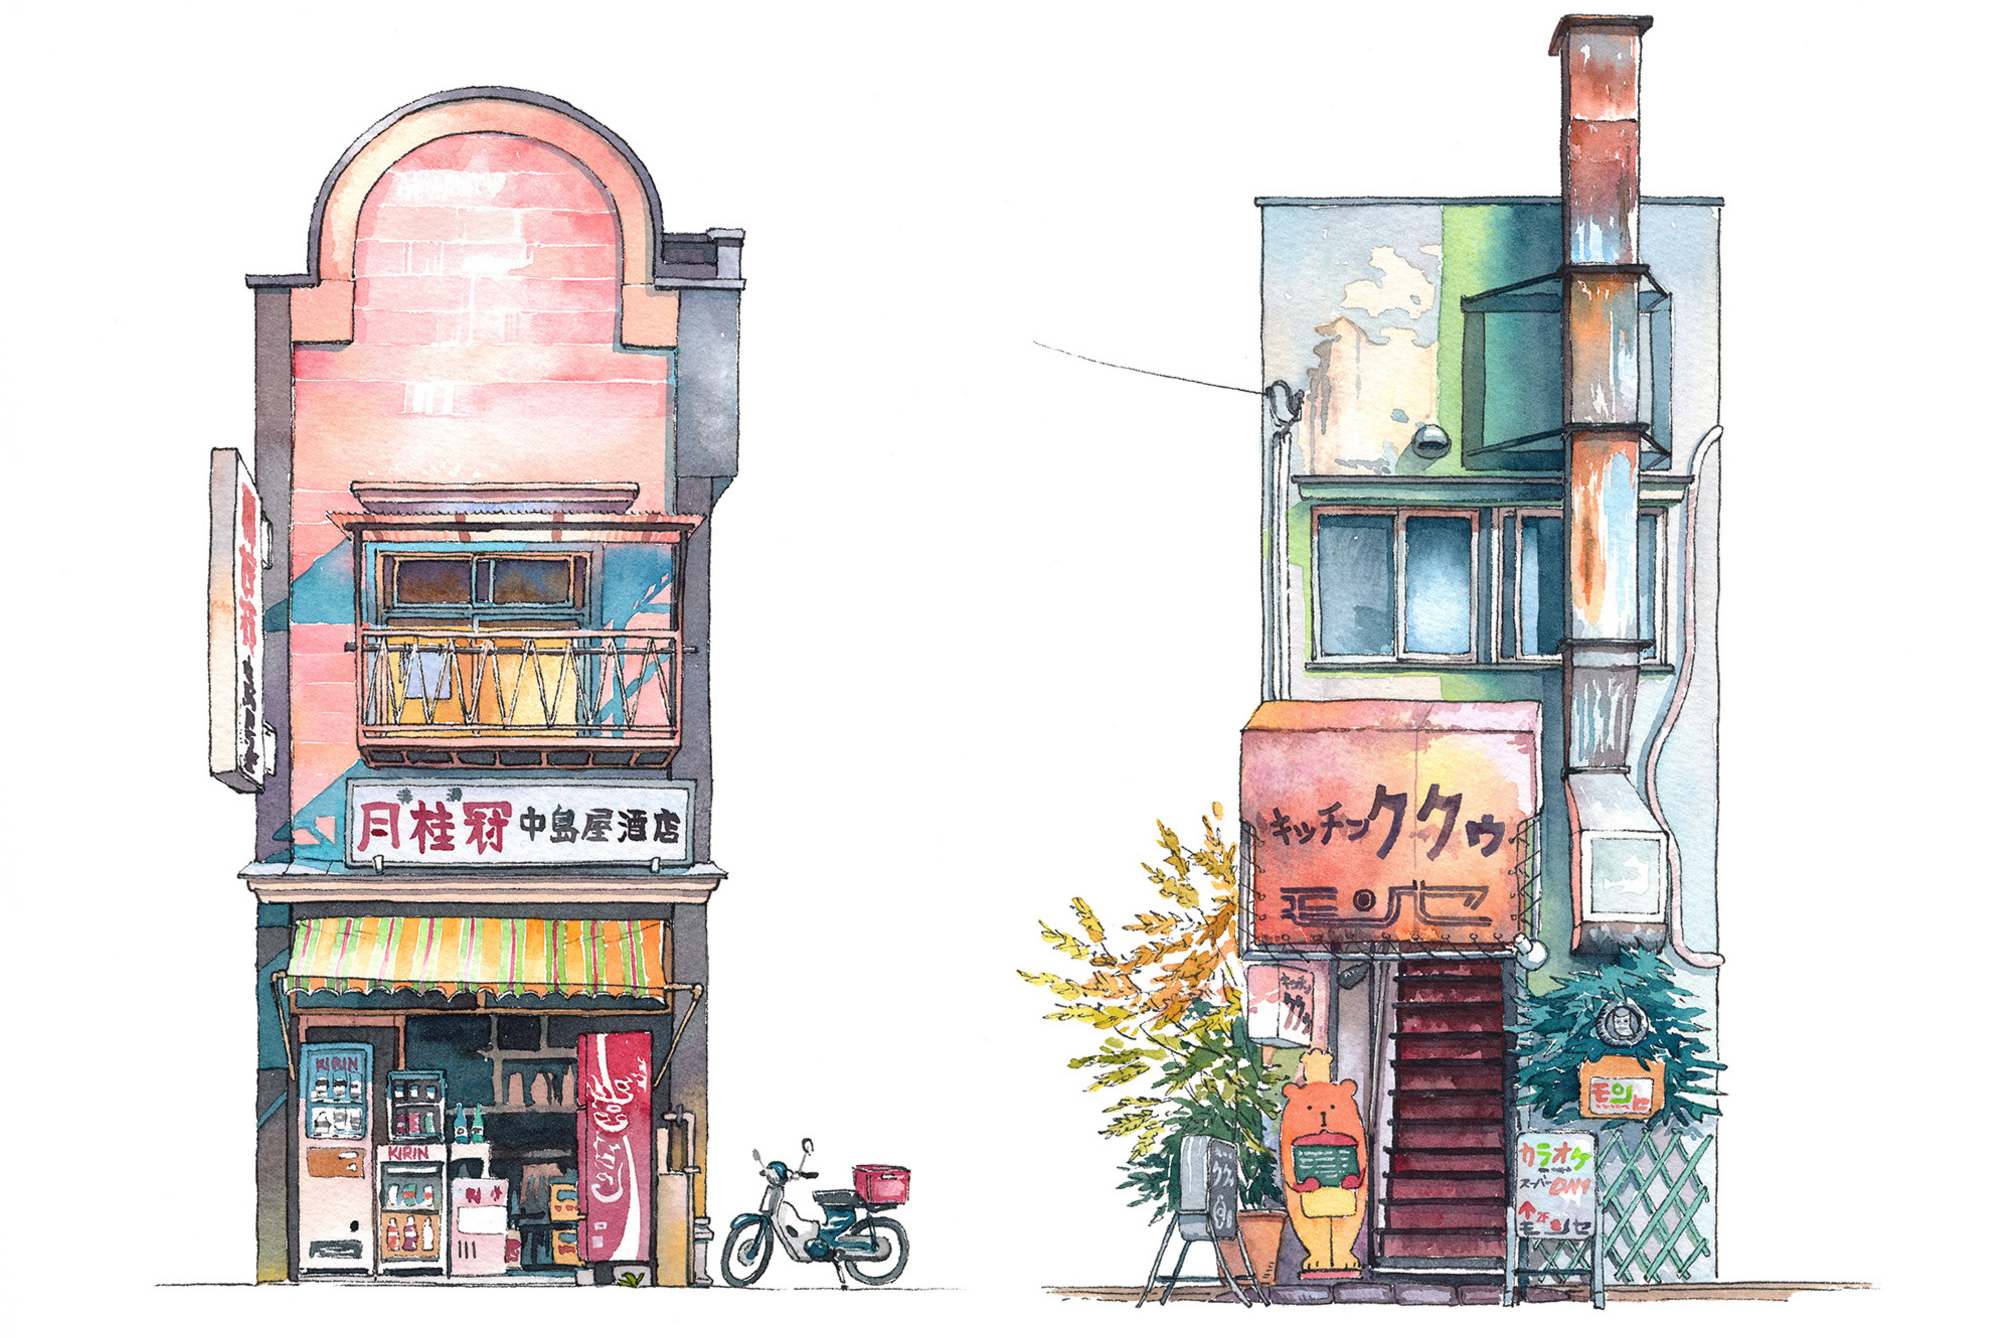 Tokyo's old storefronts come alive in these gorgeous illustrations